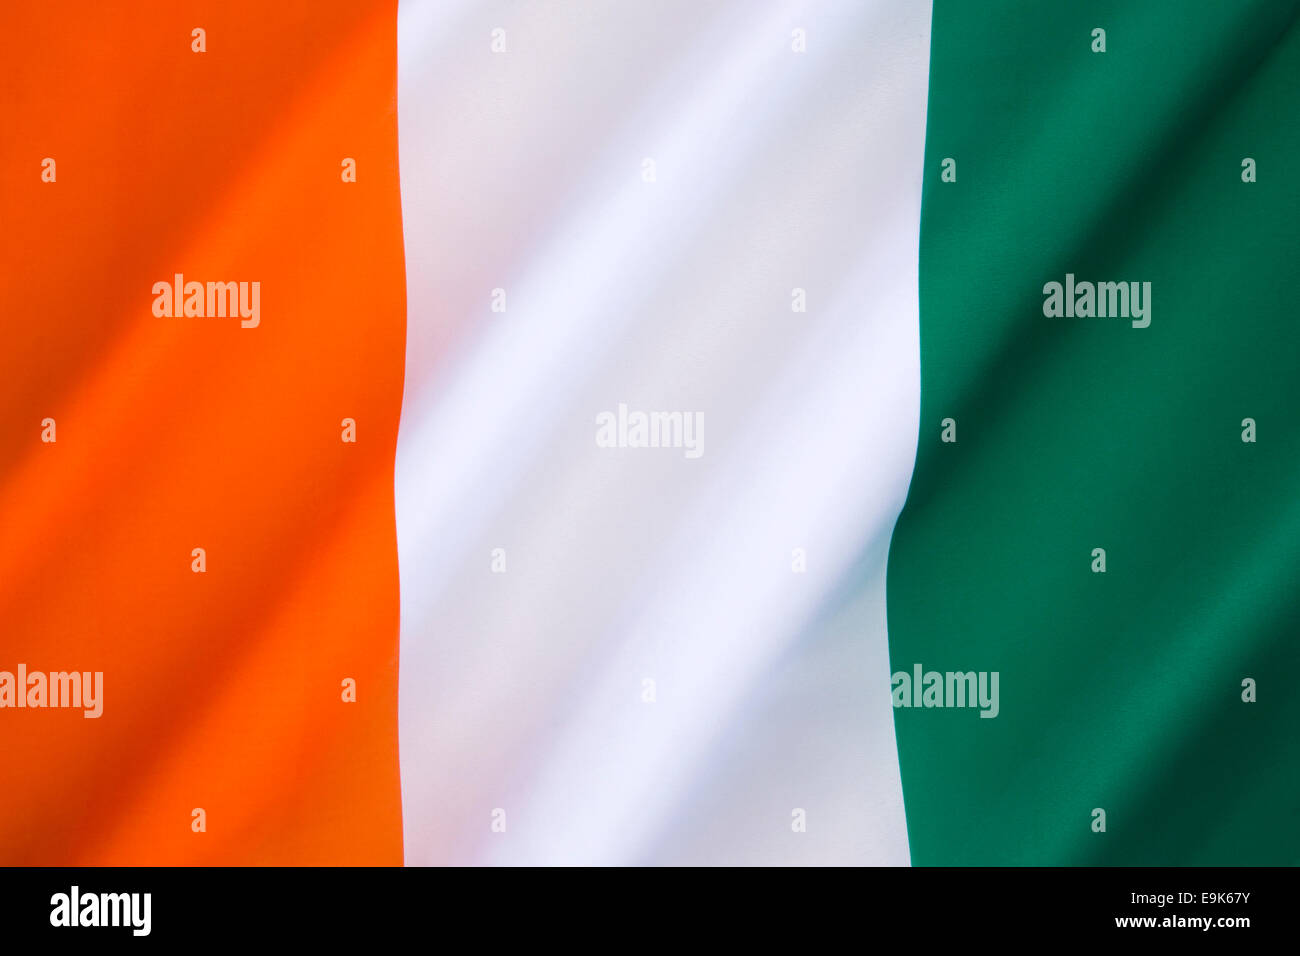 The flag of Ivory Coast - Stock Image